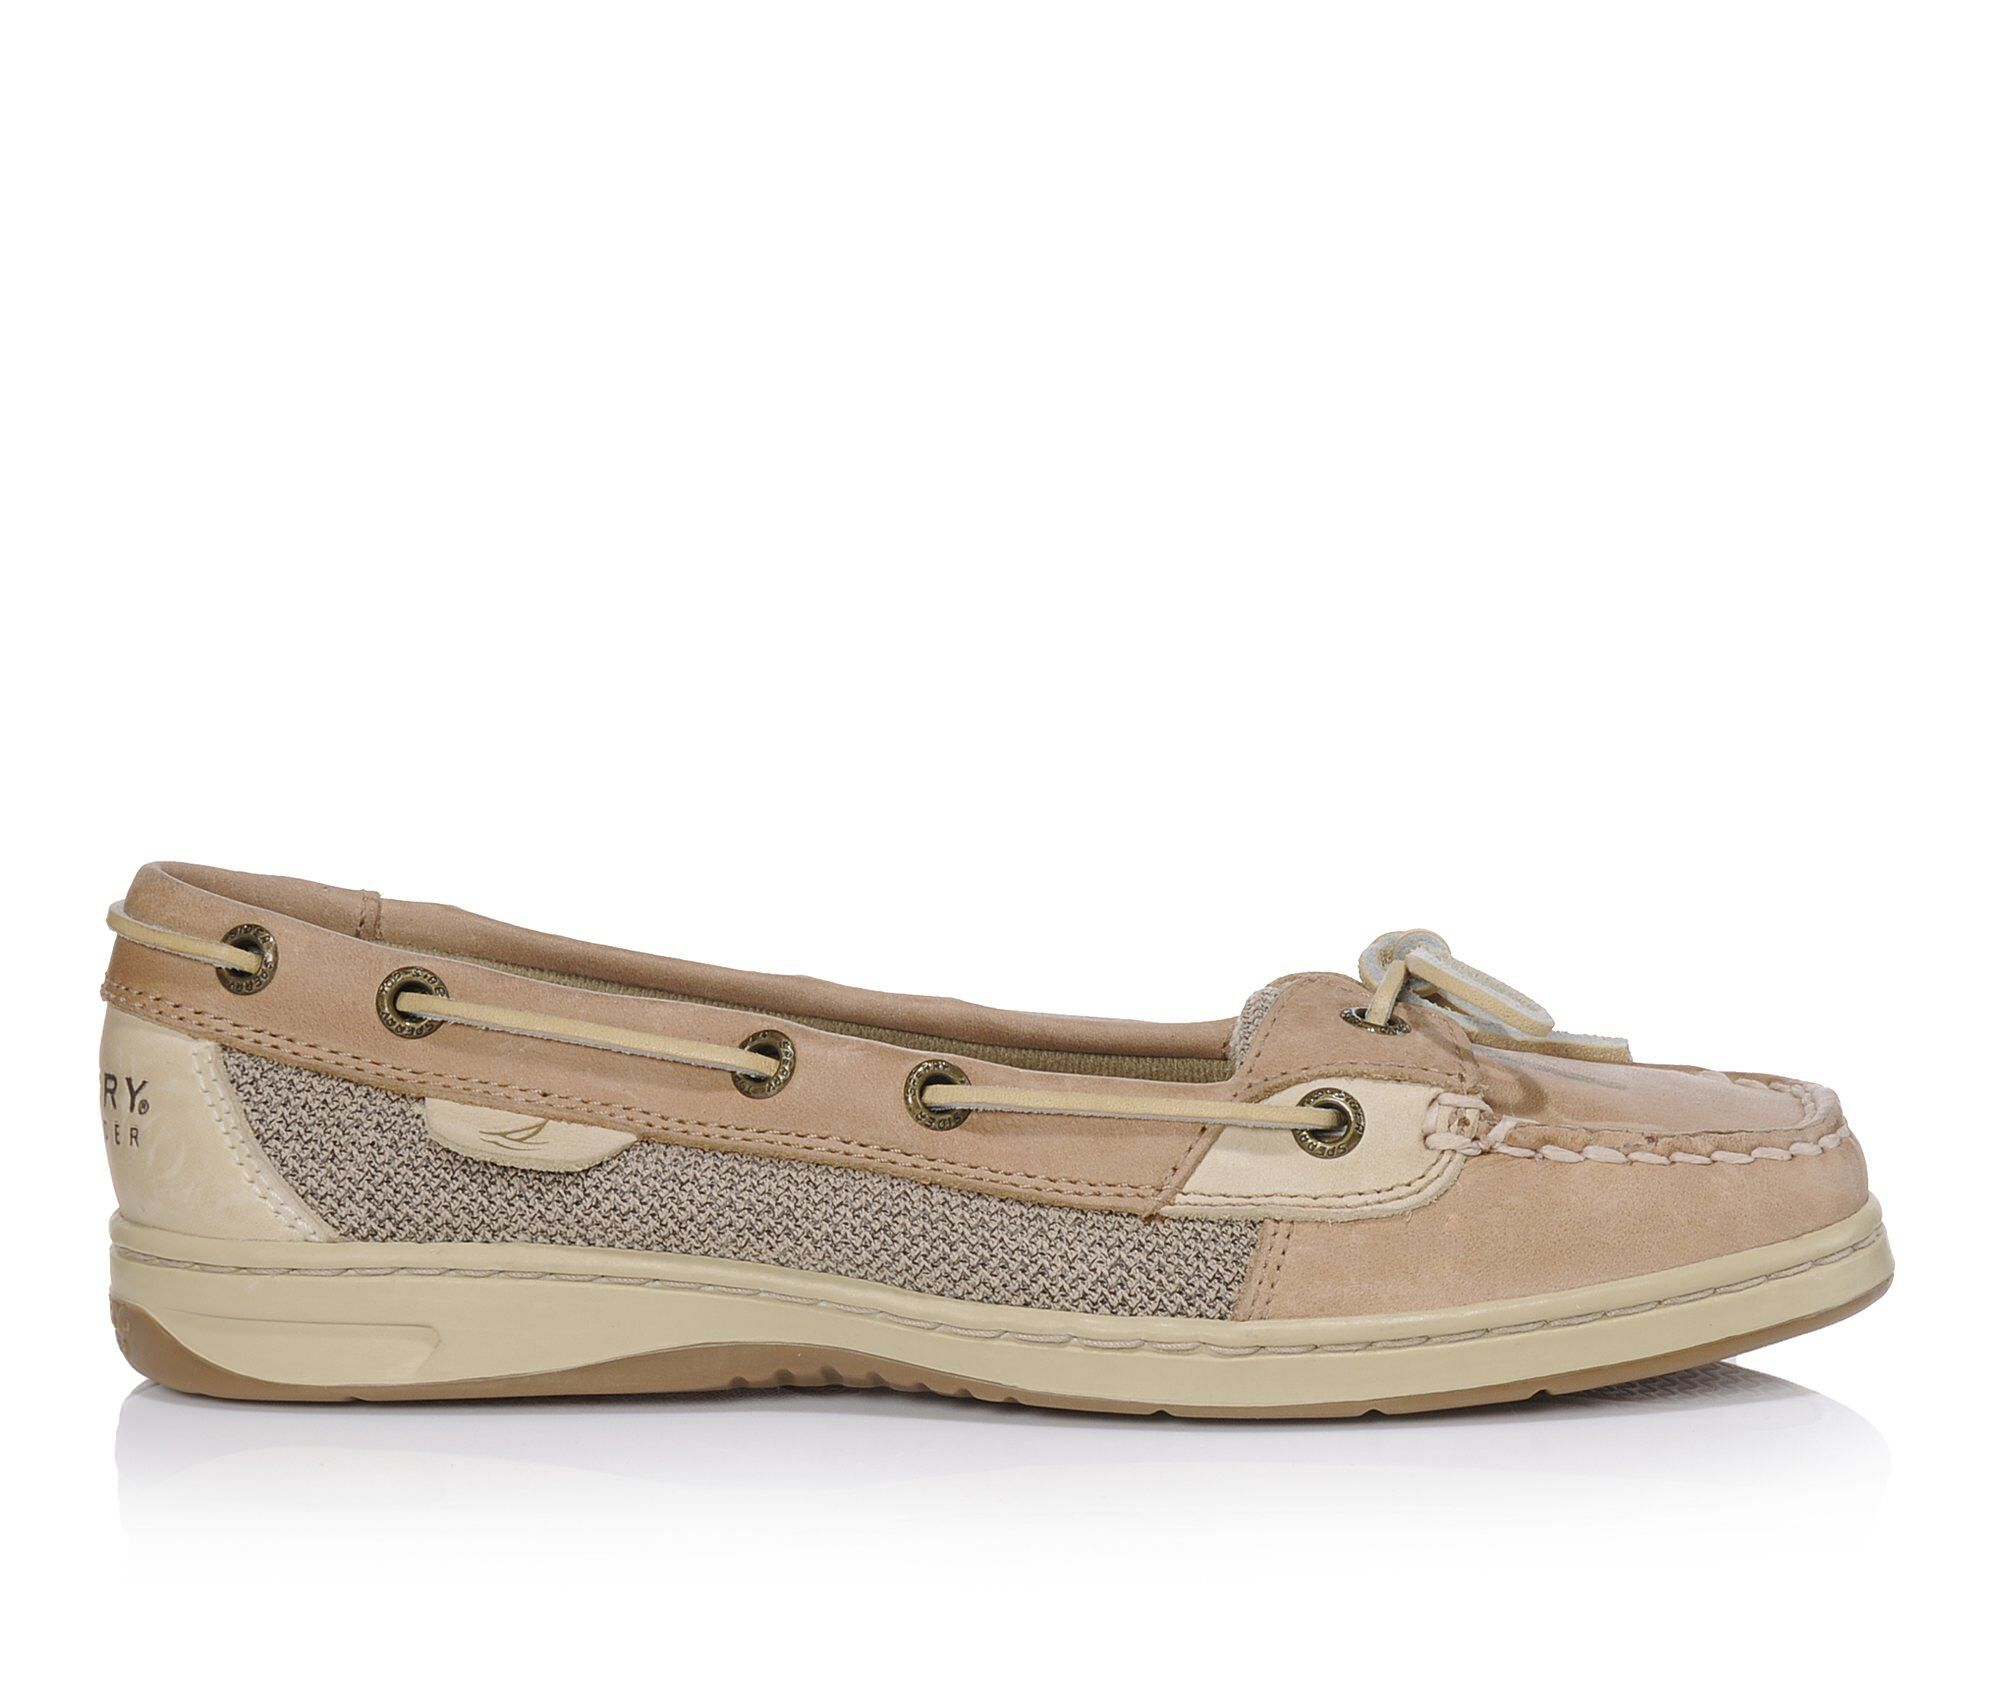 Sperry Angelfish Boat Shoes | Shoe Carnival